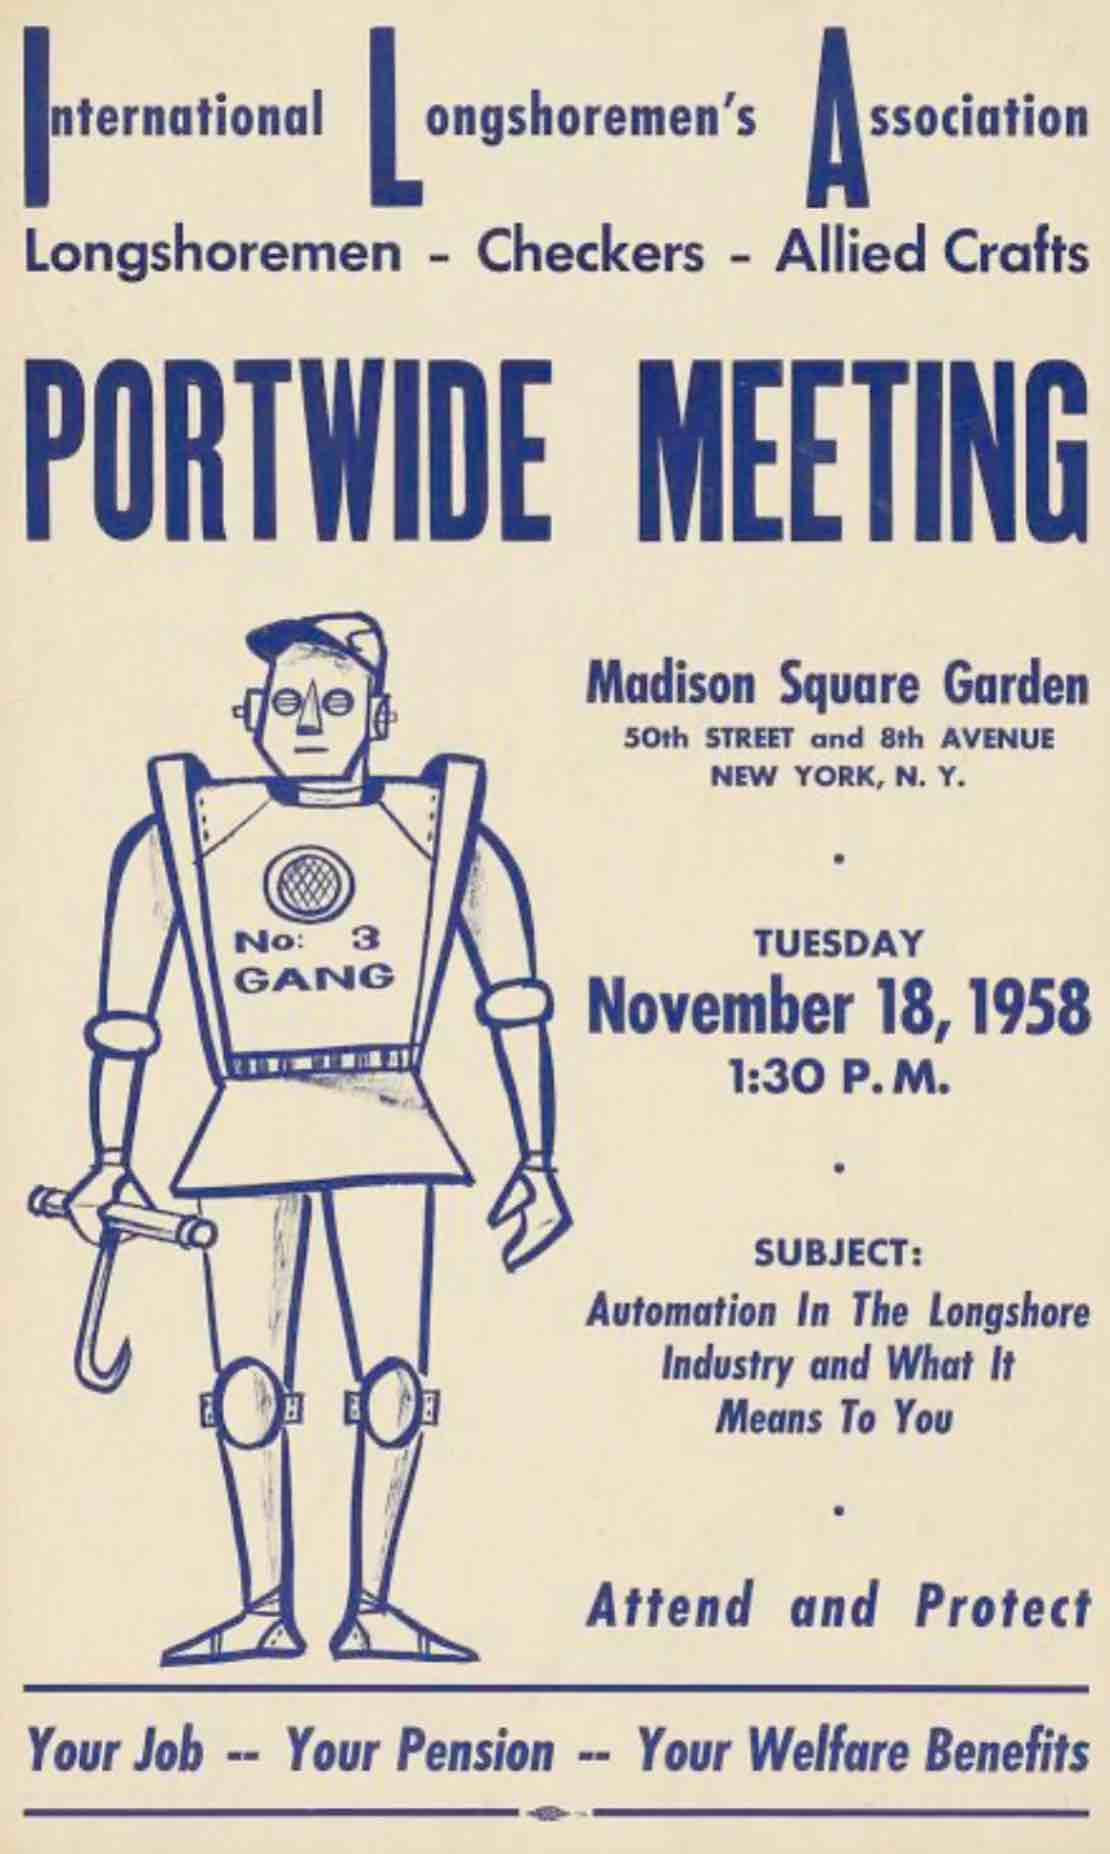 ILA-portwide-meeting-historical-poster-1958